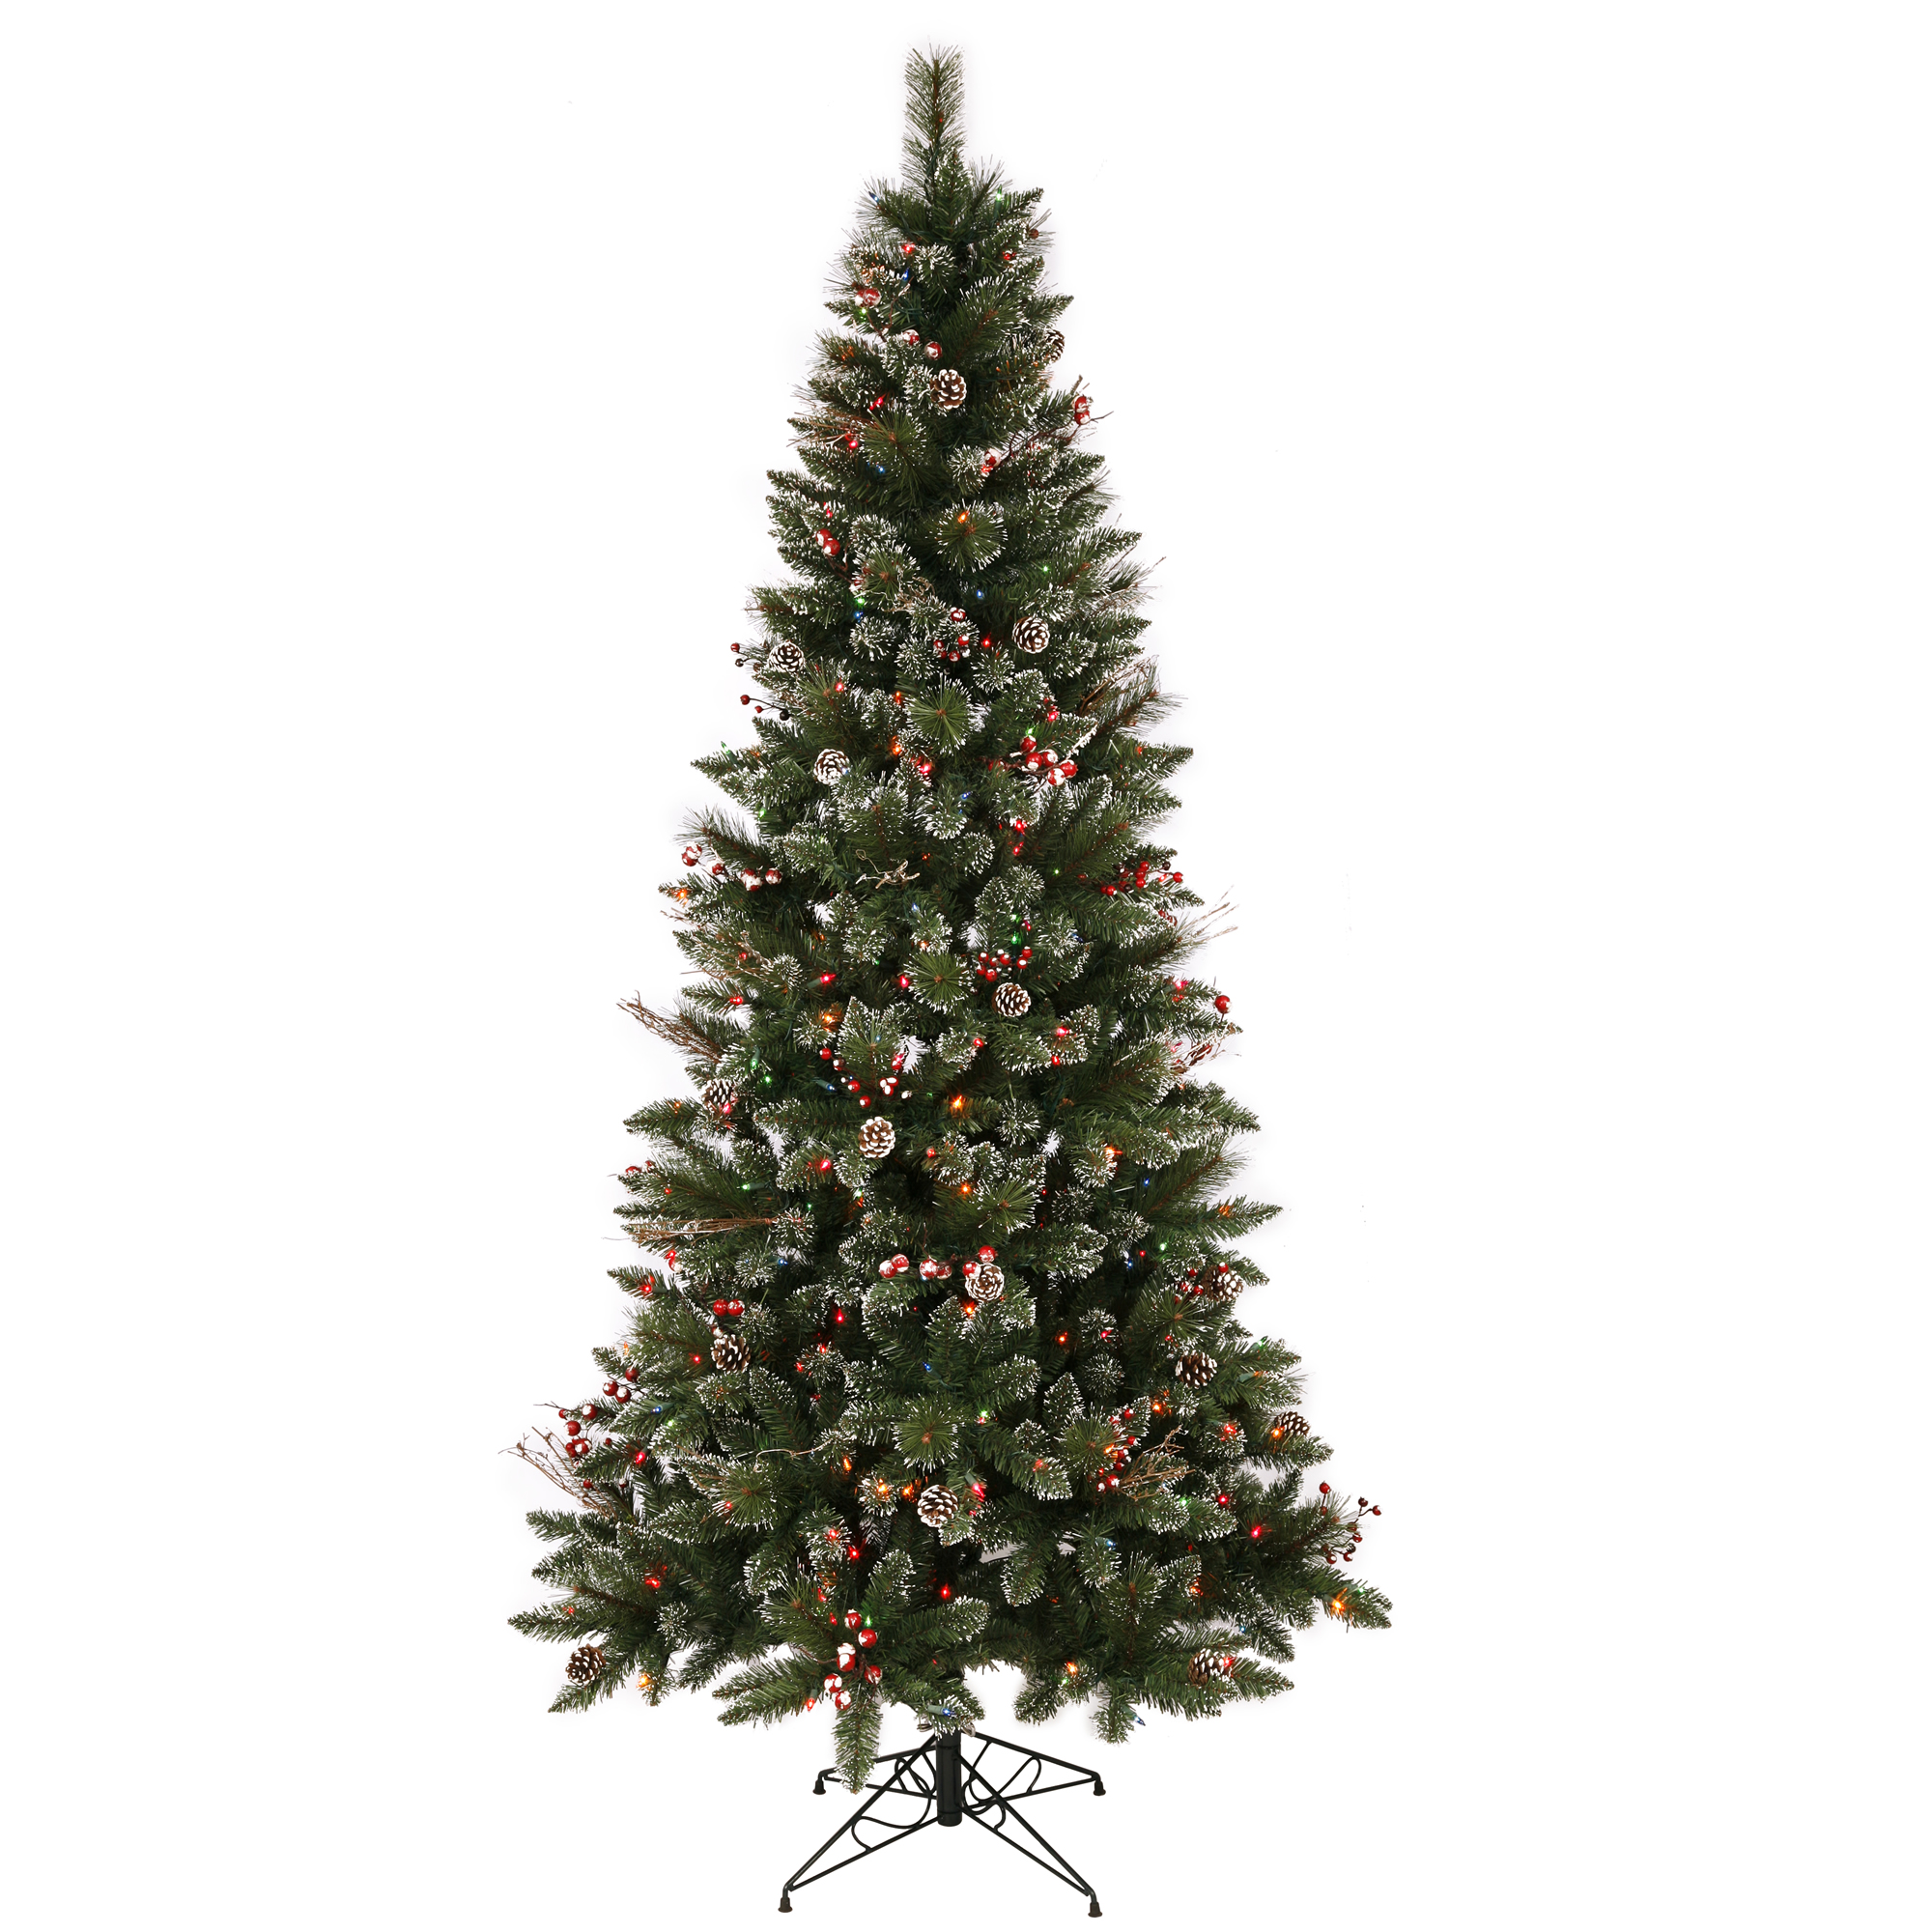 "Vickerman Artificial Christmas Tree 9' x 51"" SnowTip Berry Dura-lit LED 650 Multi-color Lights"